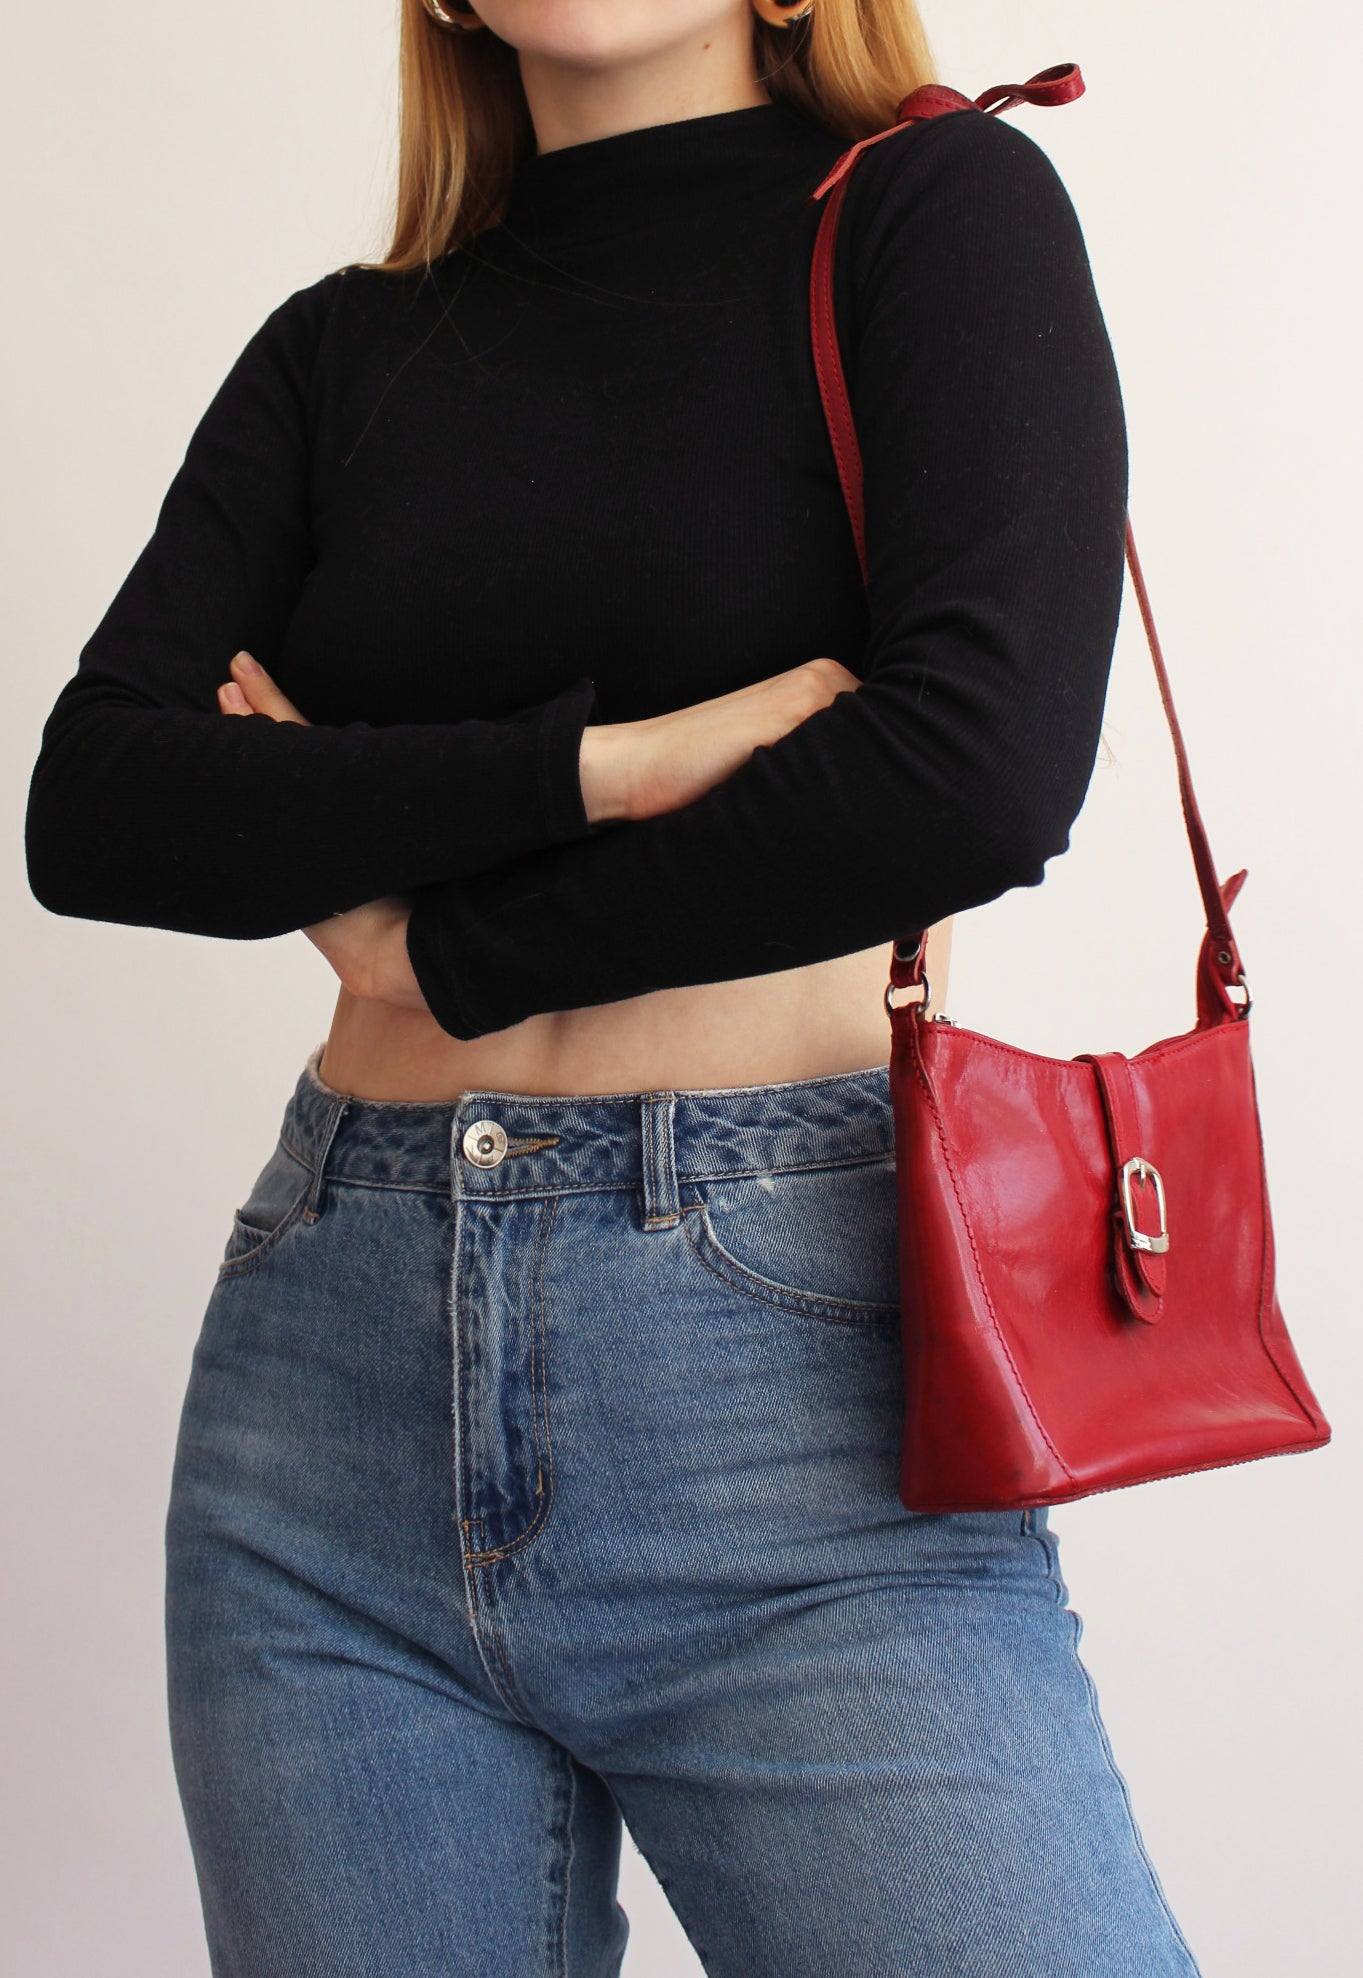 Cherry Red Leather Cross Body Bag